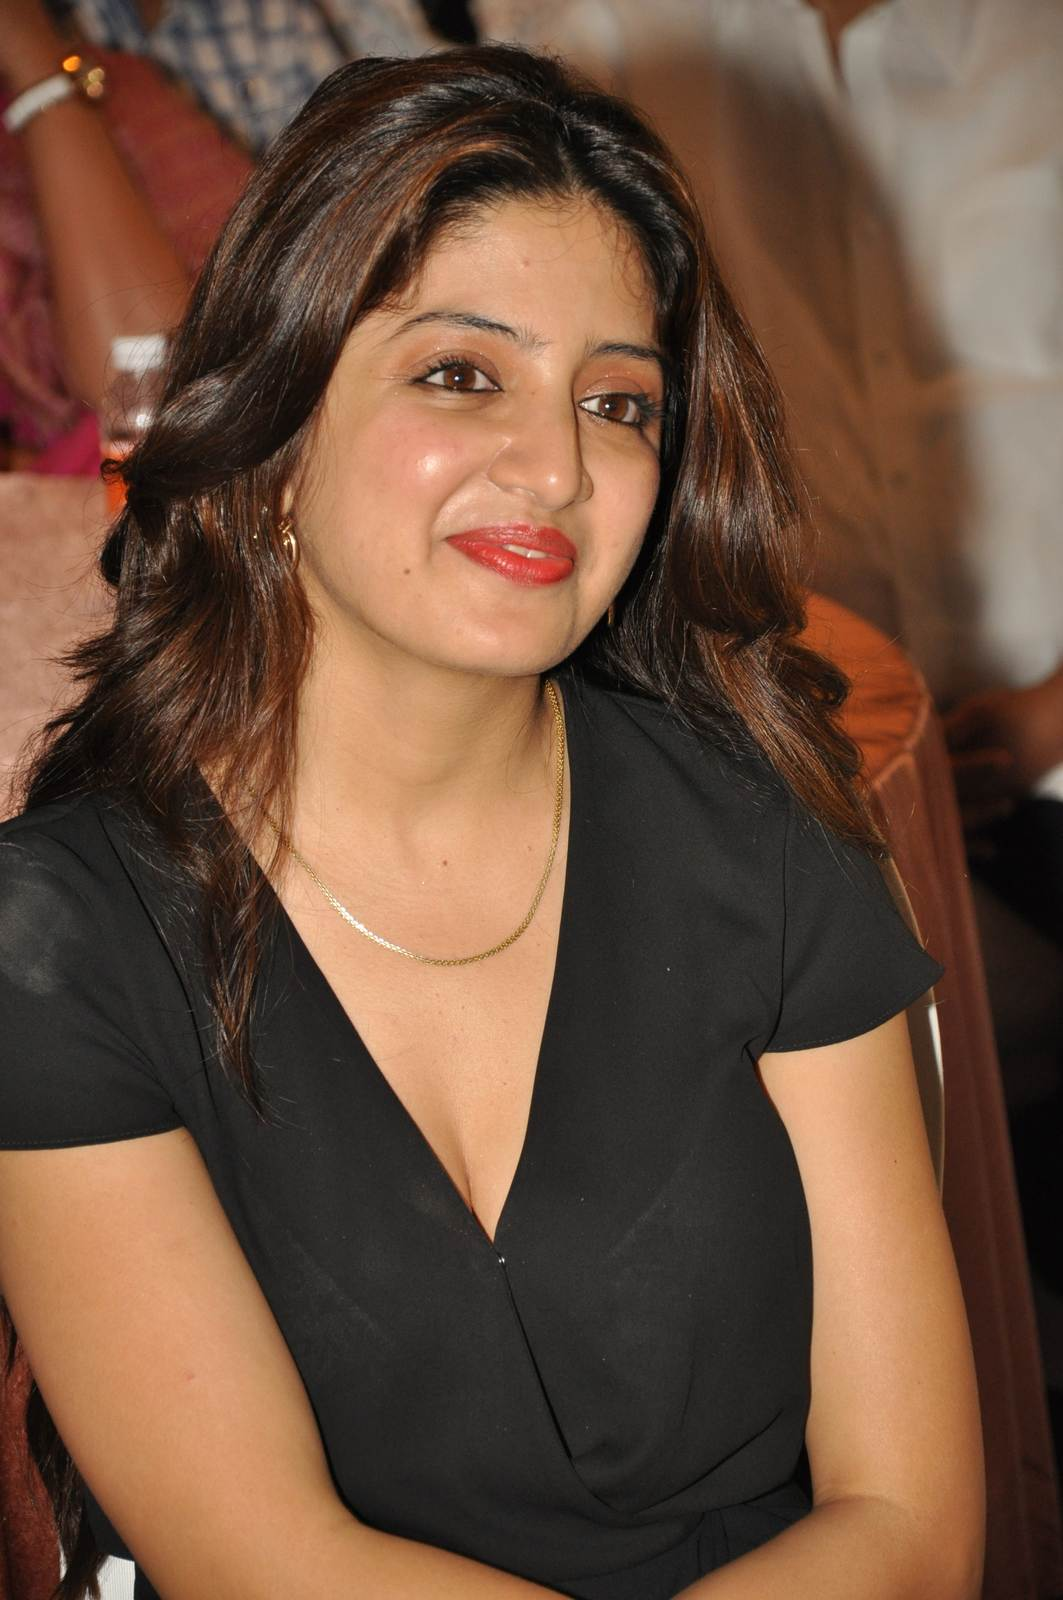 Poonam Kaur Stills in Black Dress, Poonam Kaur hot Pics in black Dress from 365 Days Movie Audio Launch